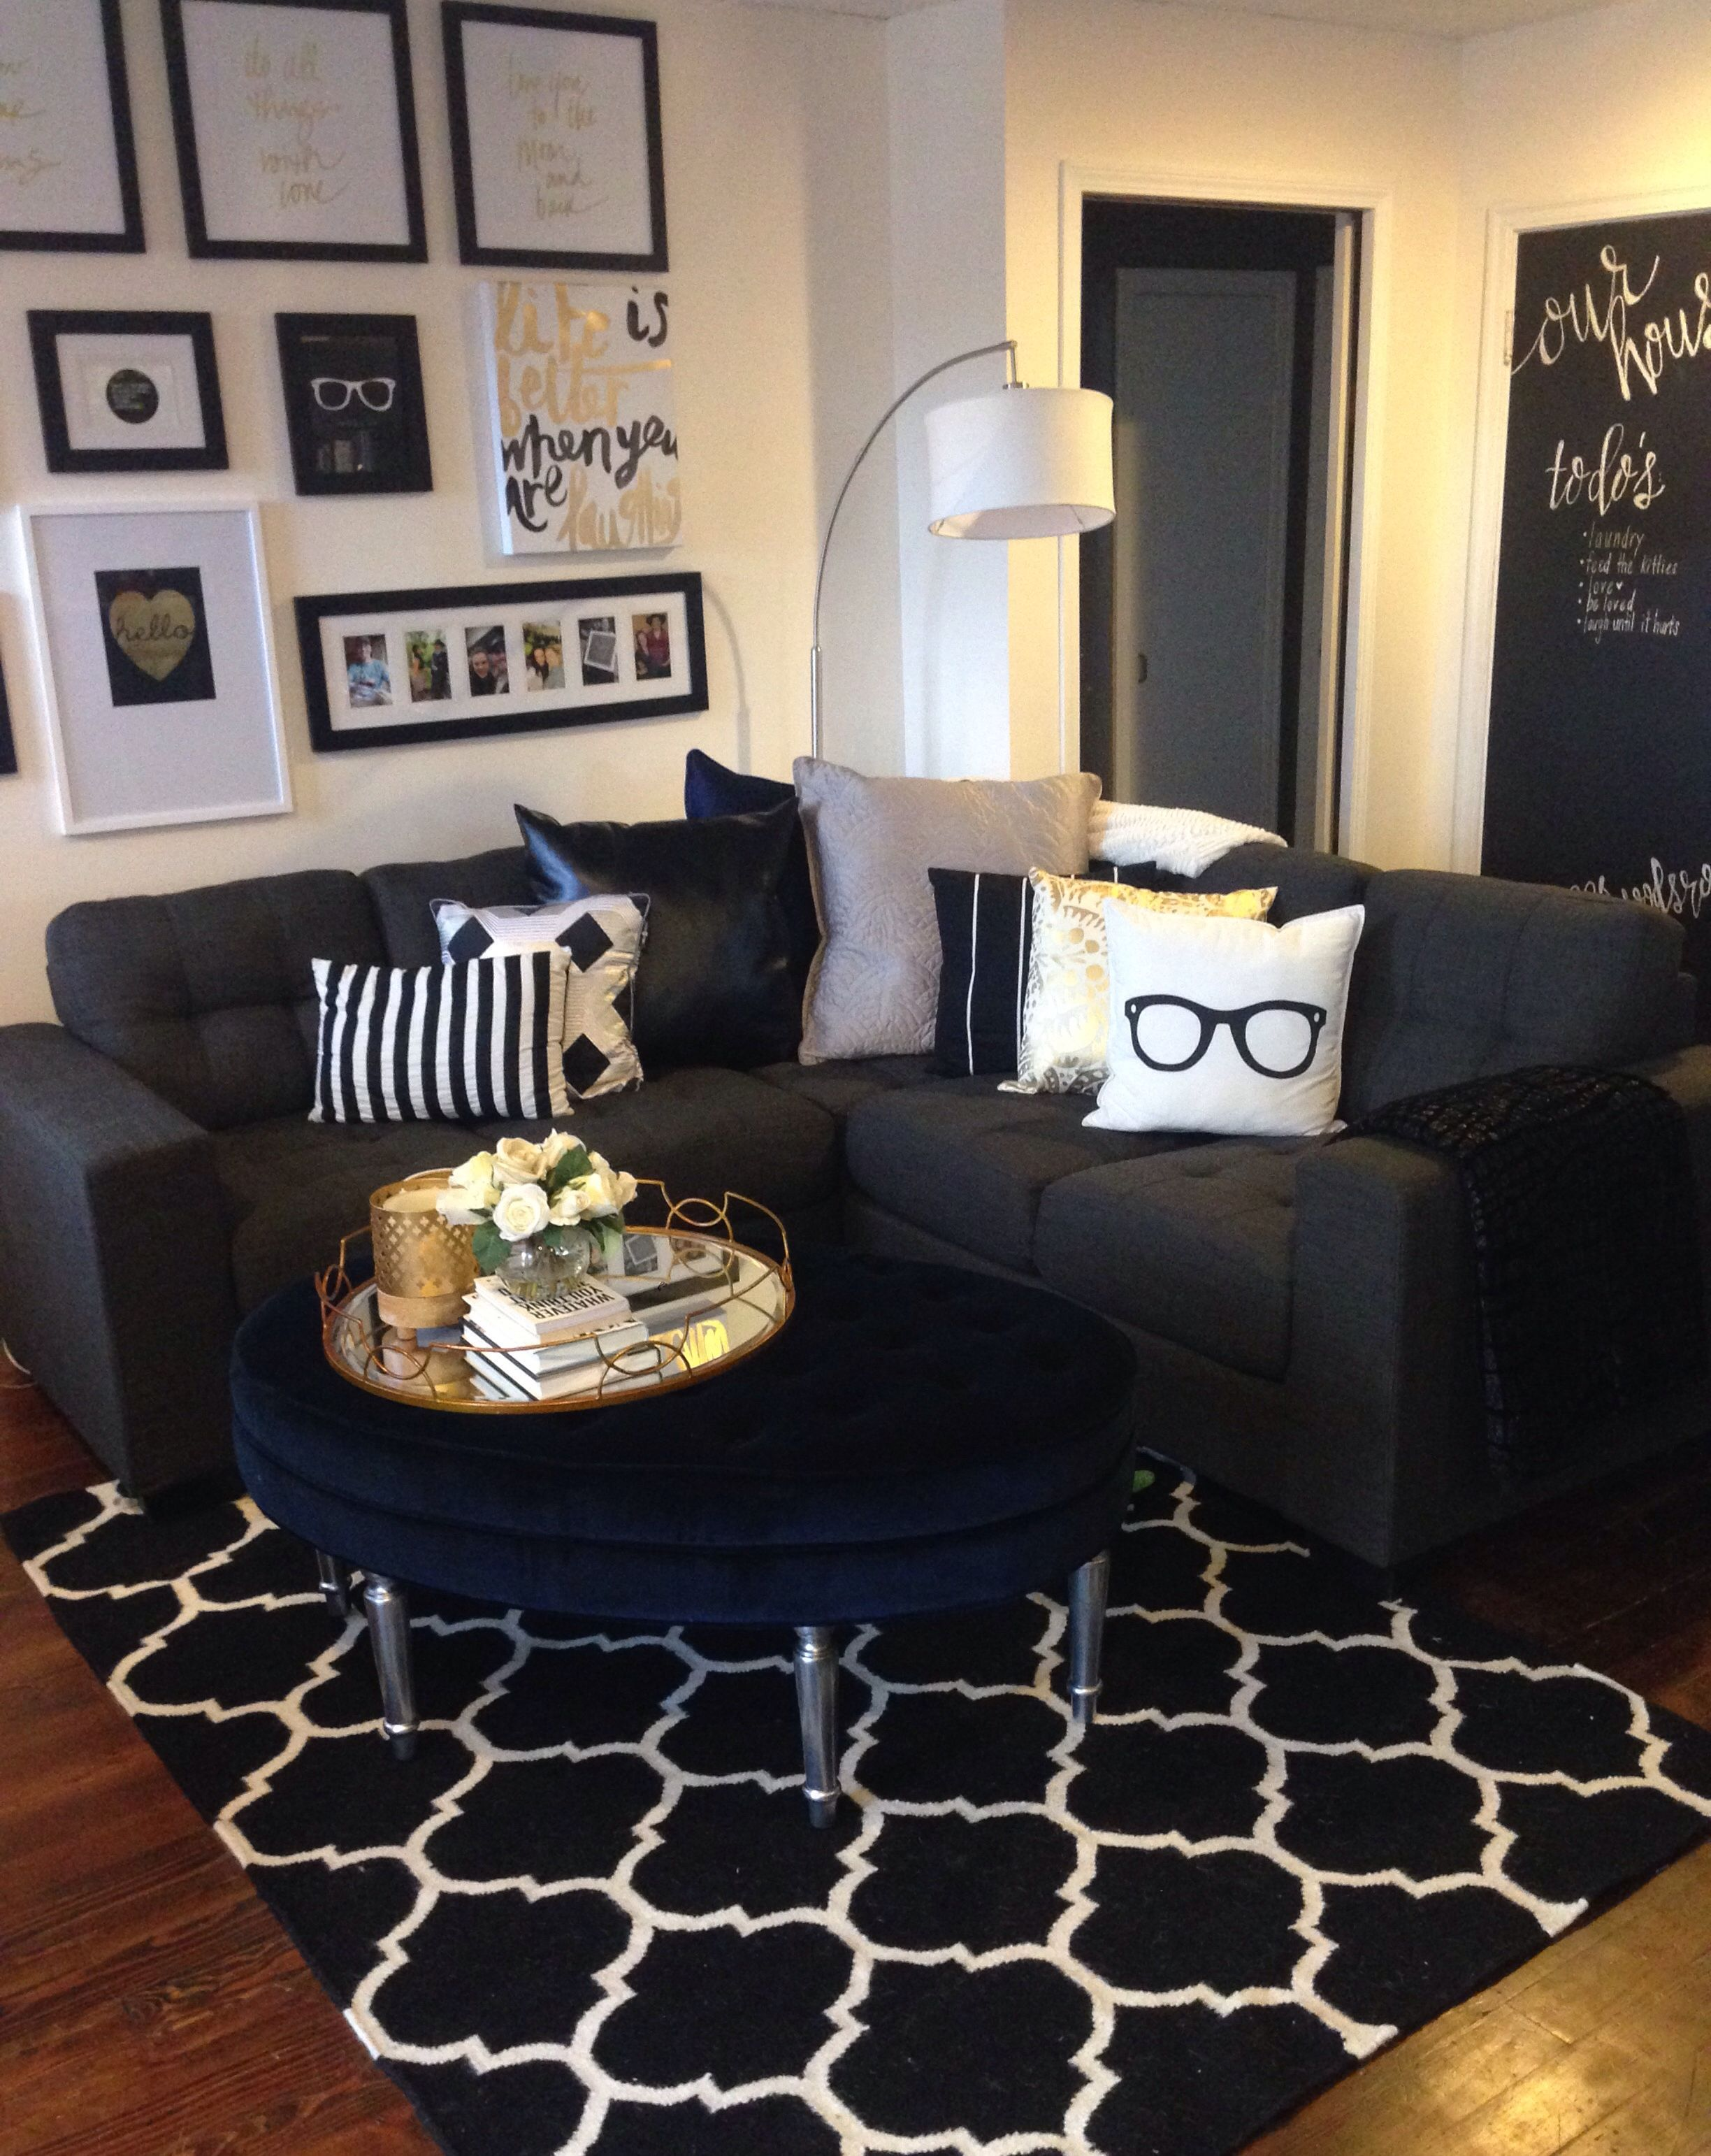 Mini living room re do Classic black white and gold with pops of